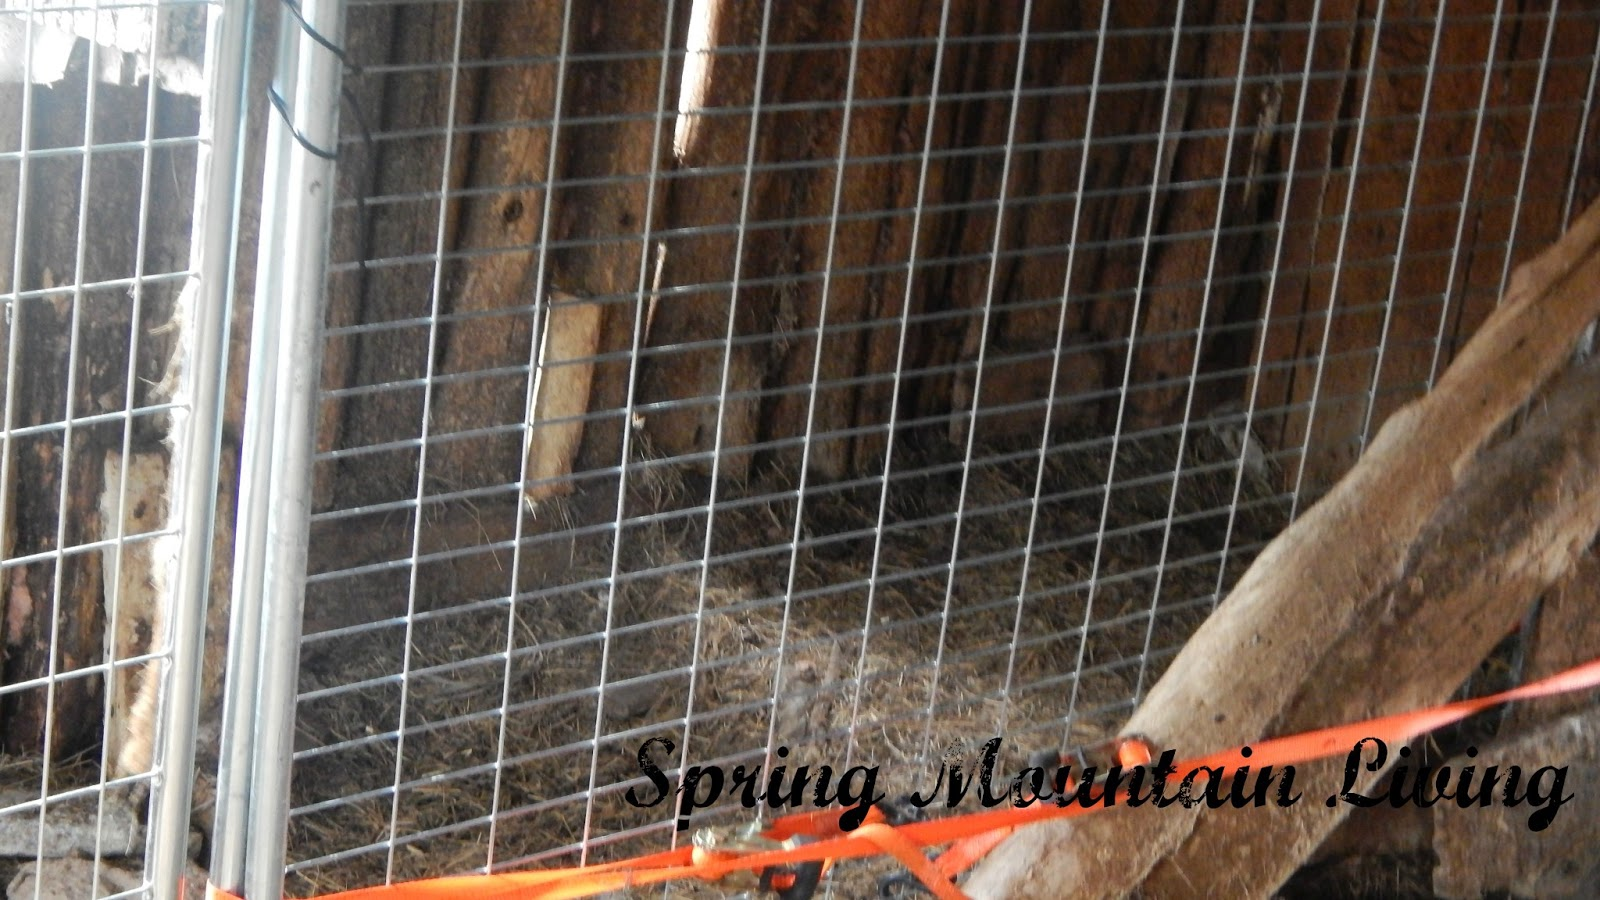 Hubby Used Some Tie Down Straps To Help Secure Of The Cage When Pulled Tight They Work Well For Multiple Applications And Make A Portable